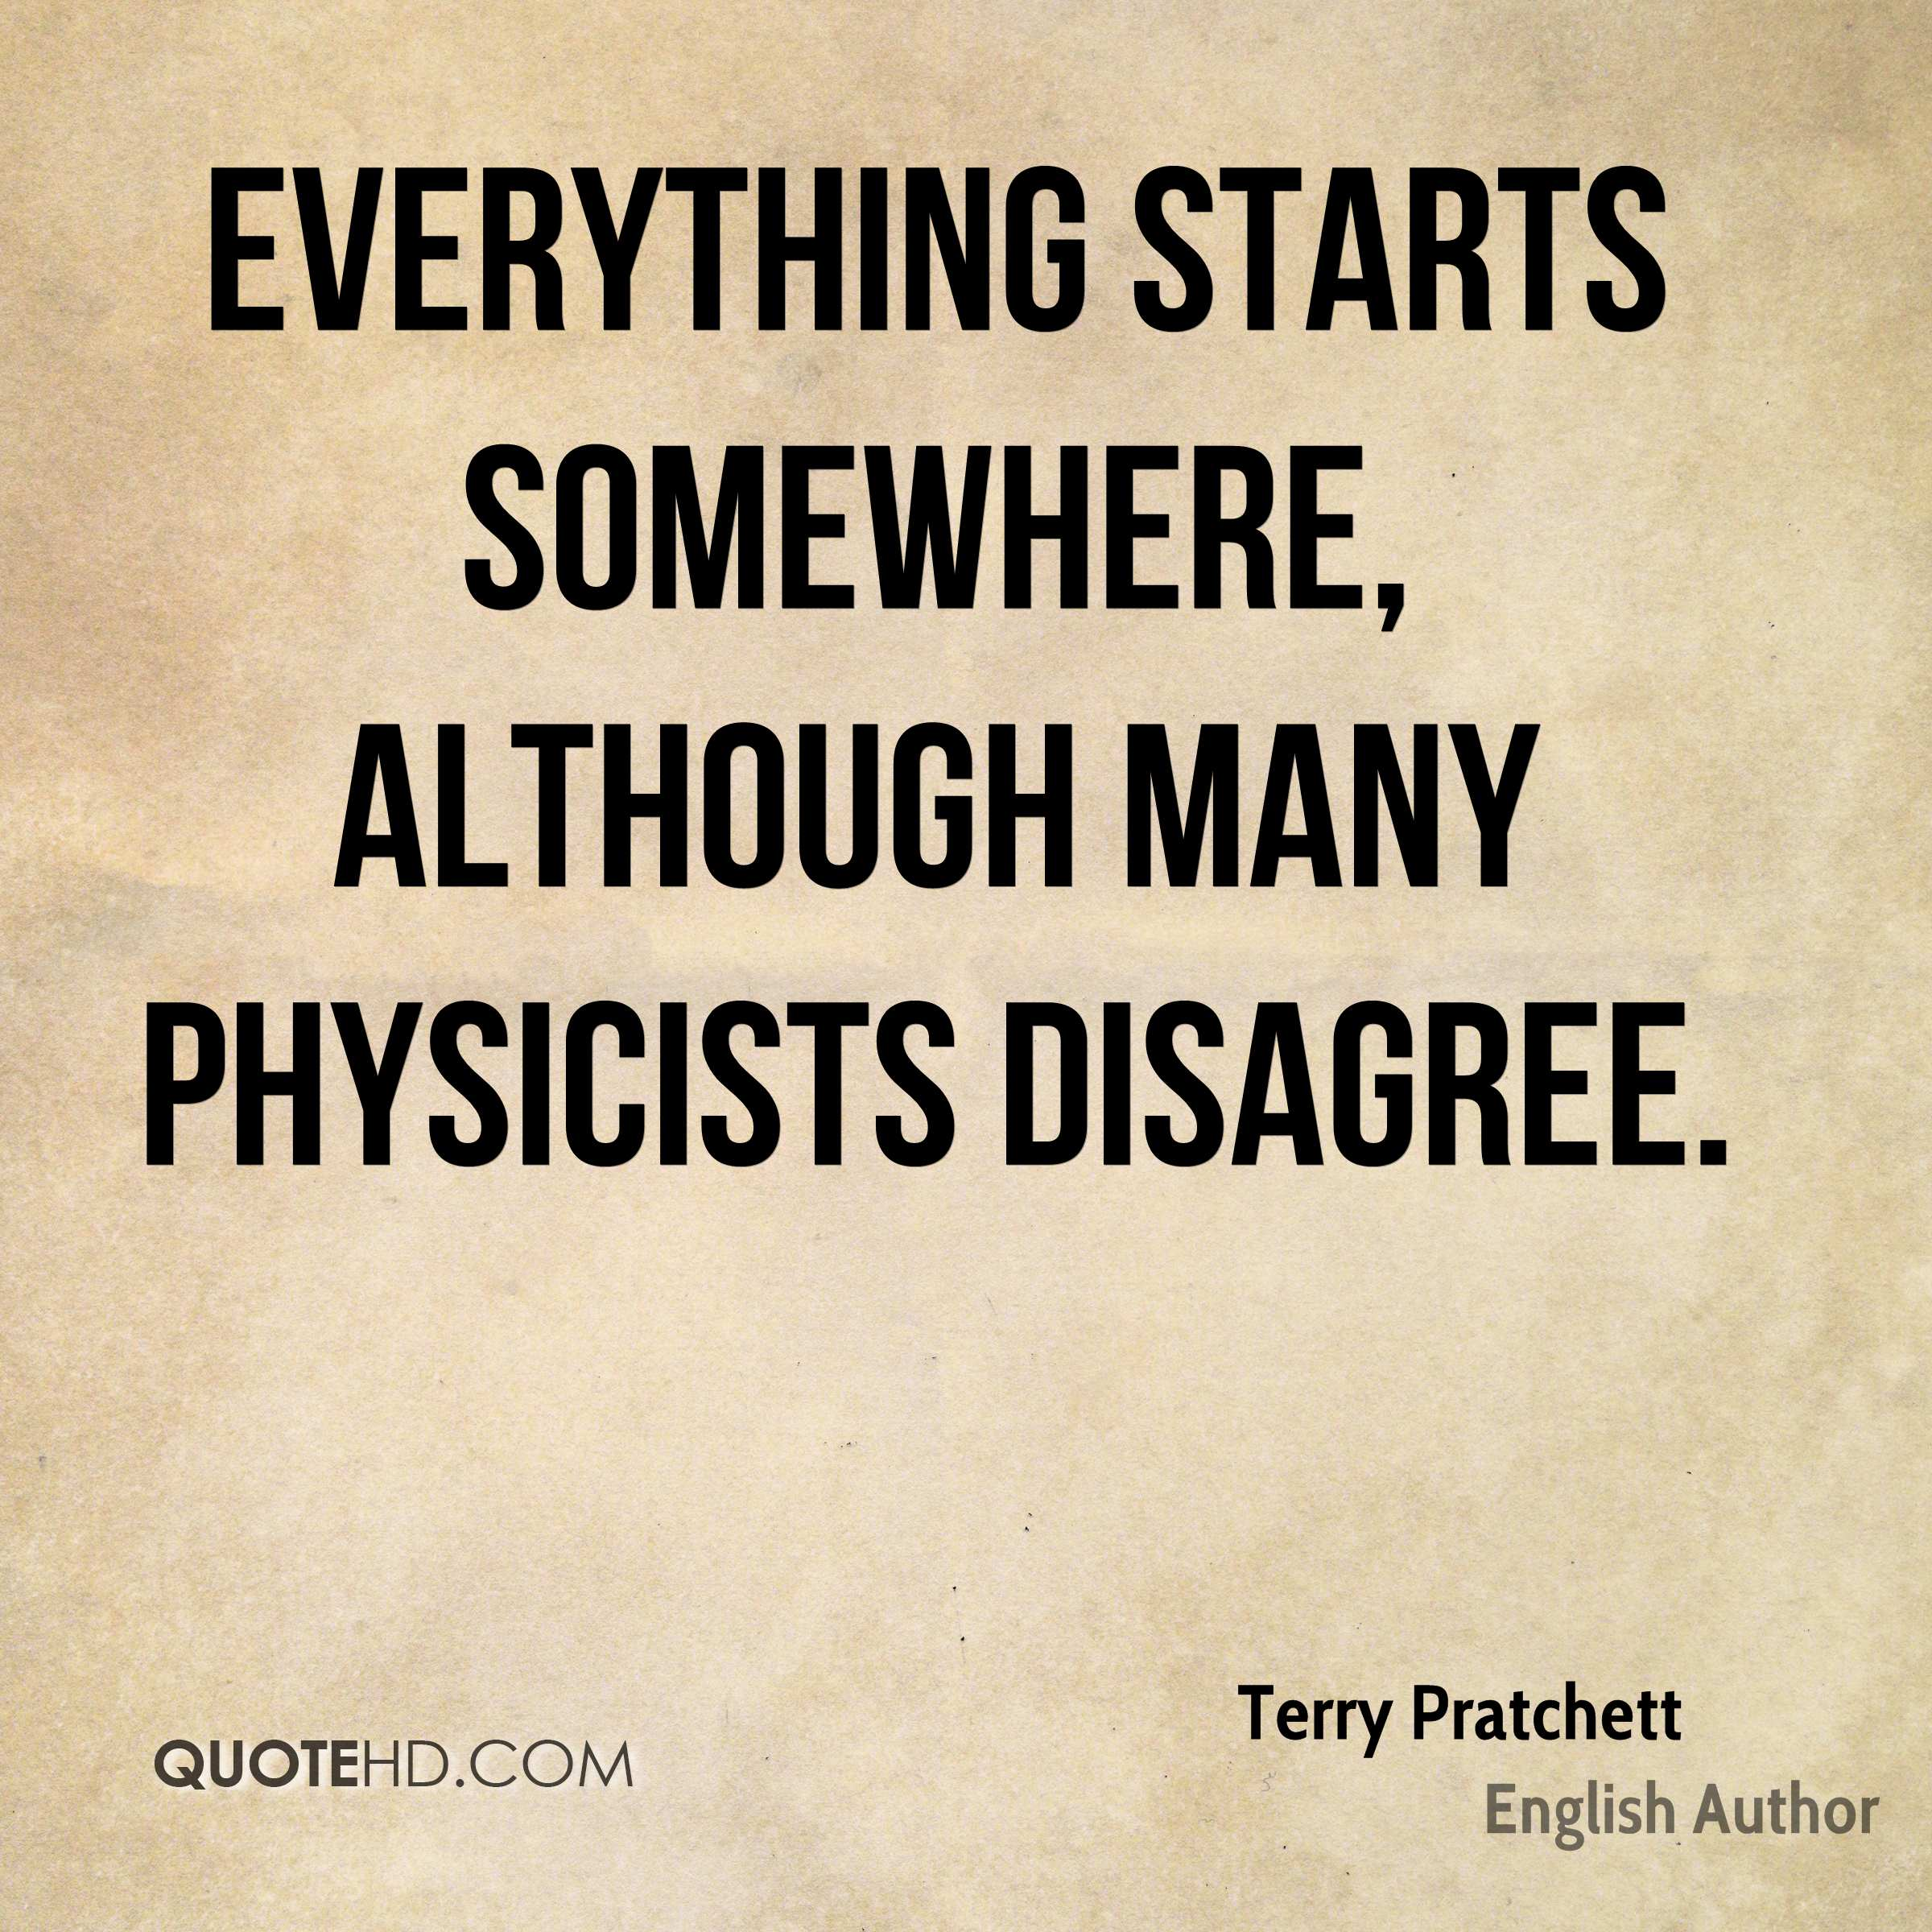 Everything starts somewhere, although many physicists disagree.